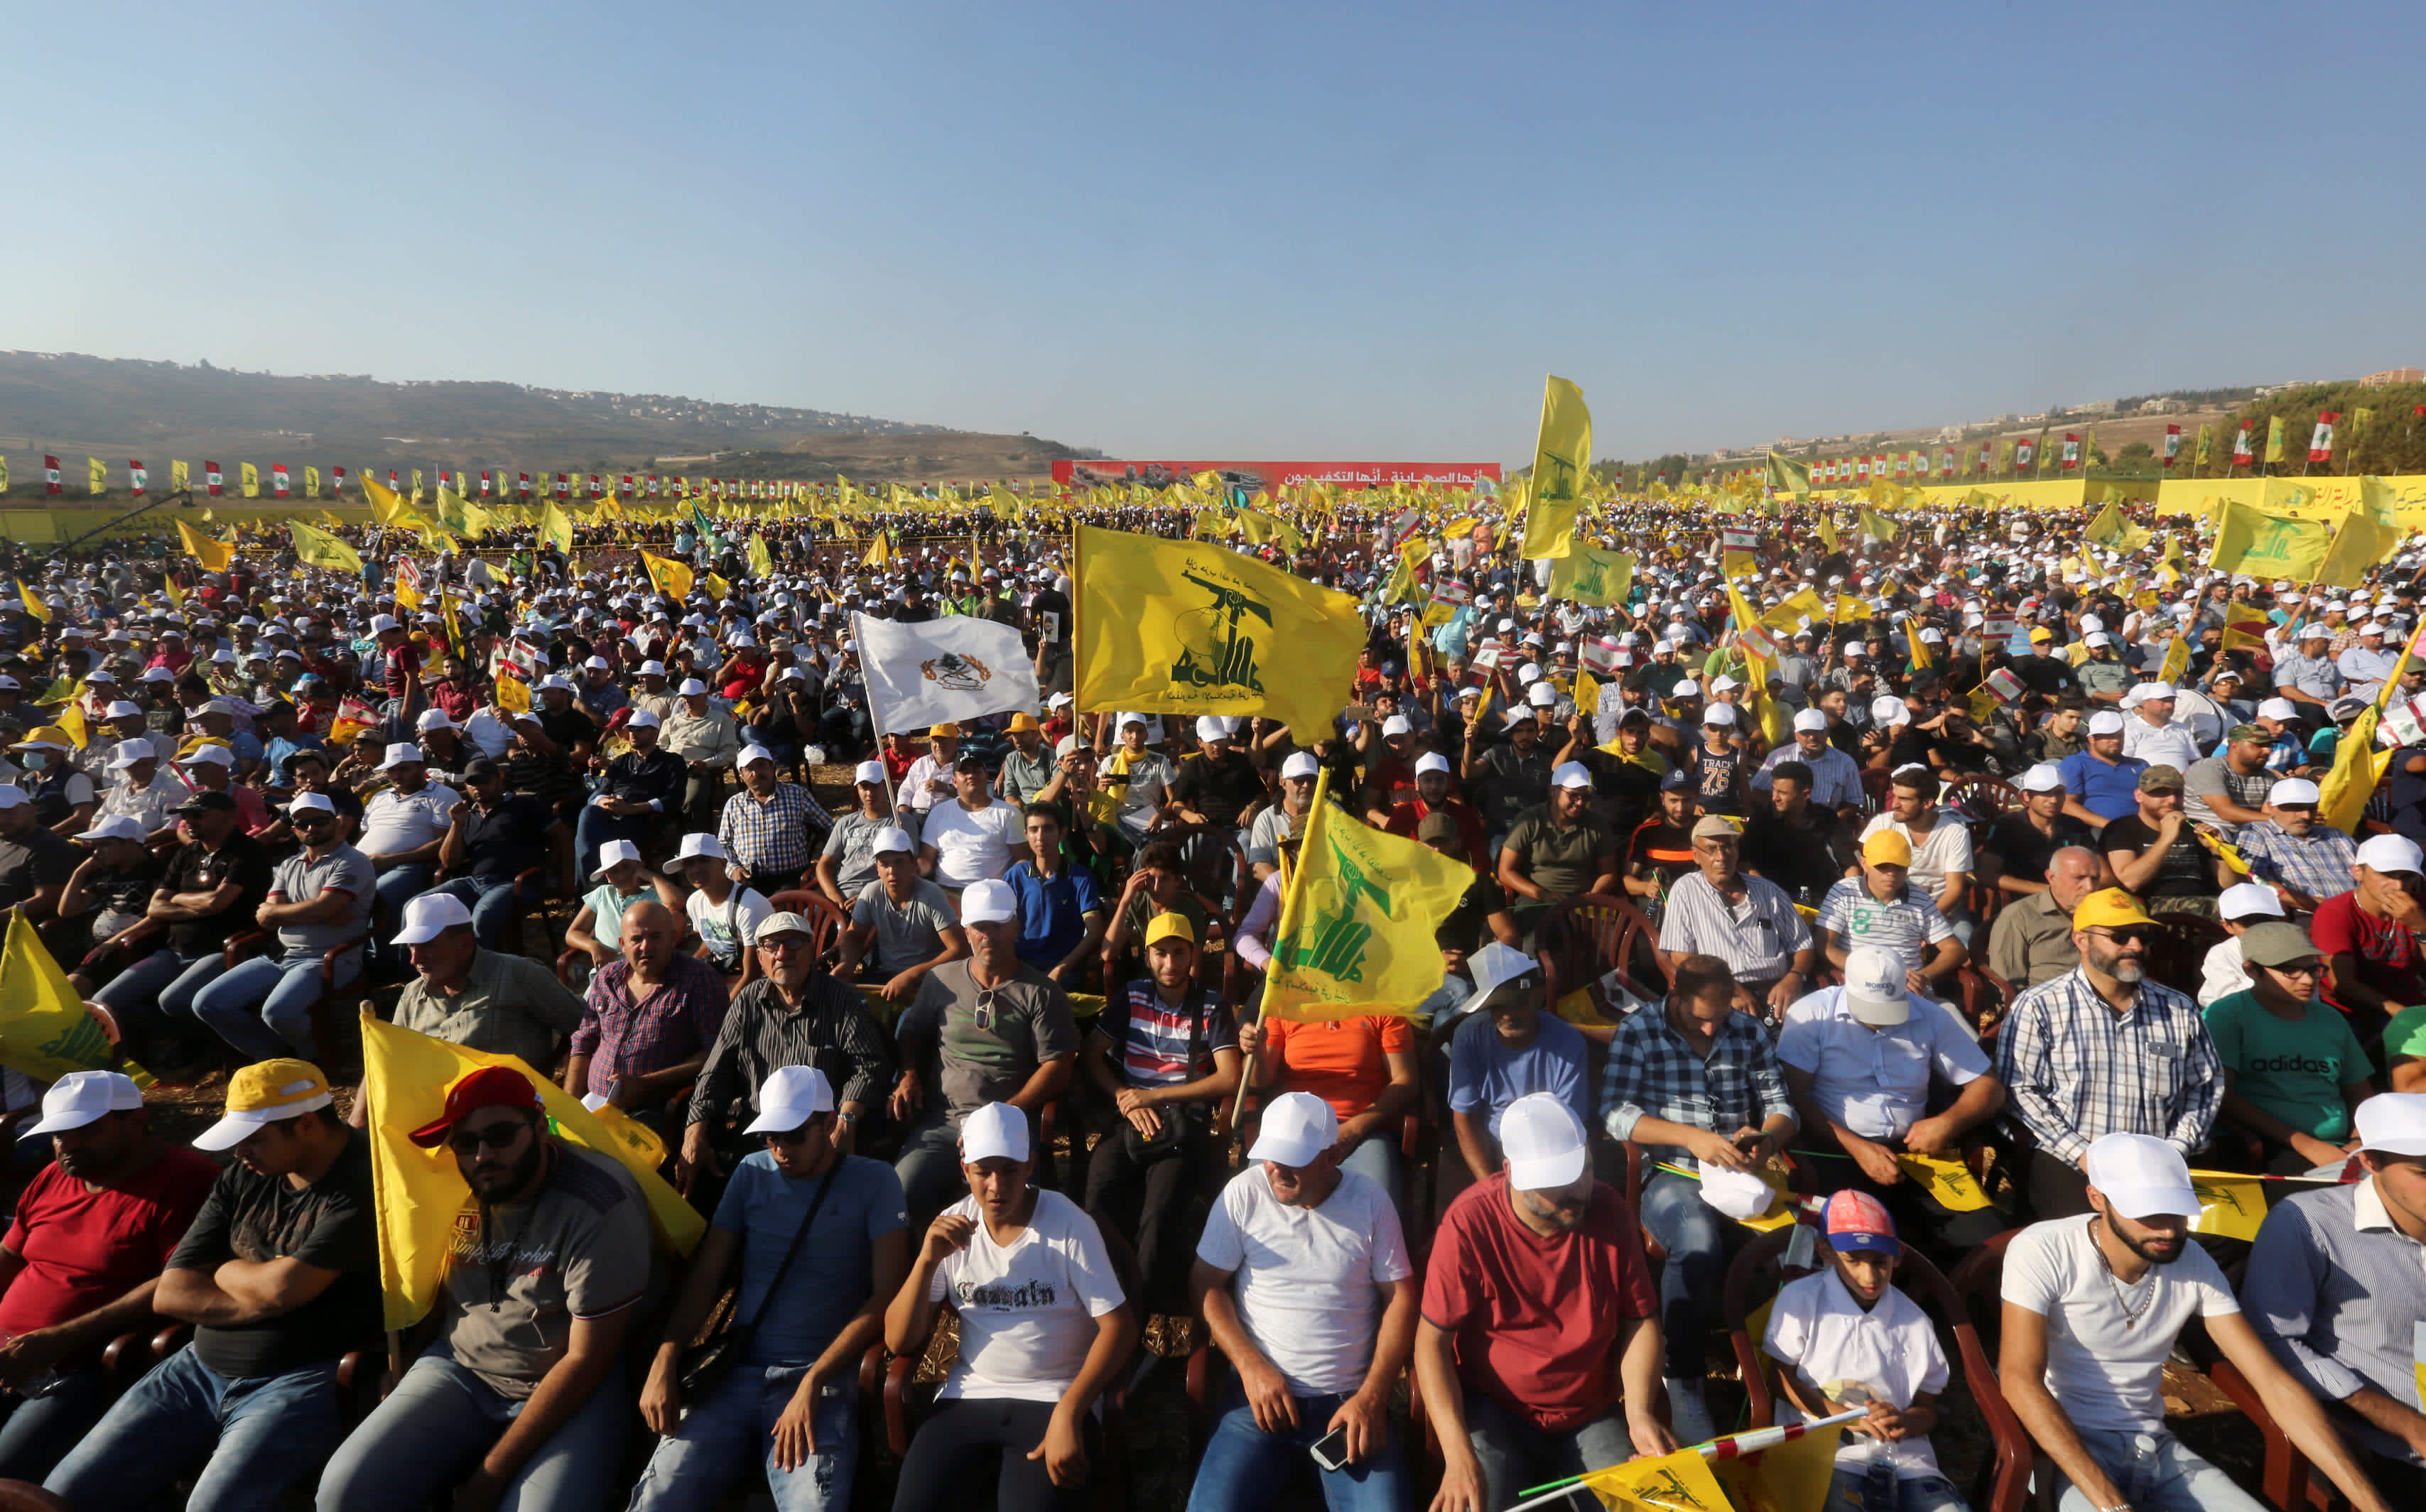 Supporters of Lebanon's Hezbollah leader Sayyed Hassan Nasrallah display Hezbollah flags during a rally marking the 11th anniversary of the end of Hezbollah's 2006 war with Israel, in the southern village of Khiam, Lebanon, August 13, 2017.  (Reuters/Aziz Taher)